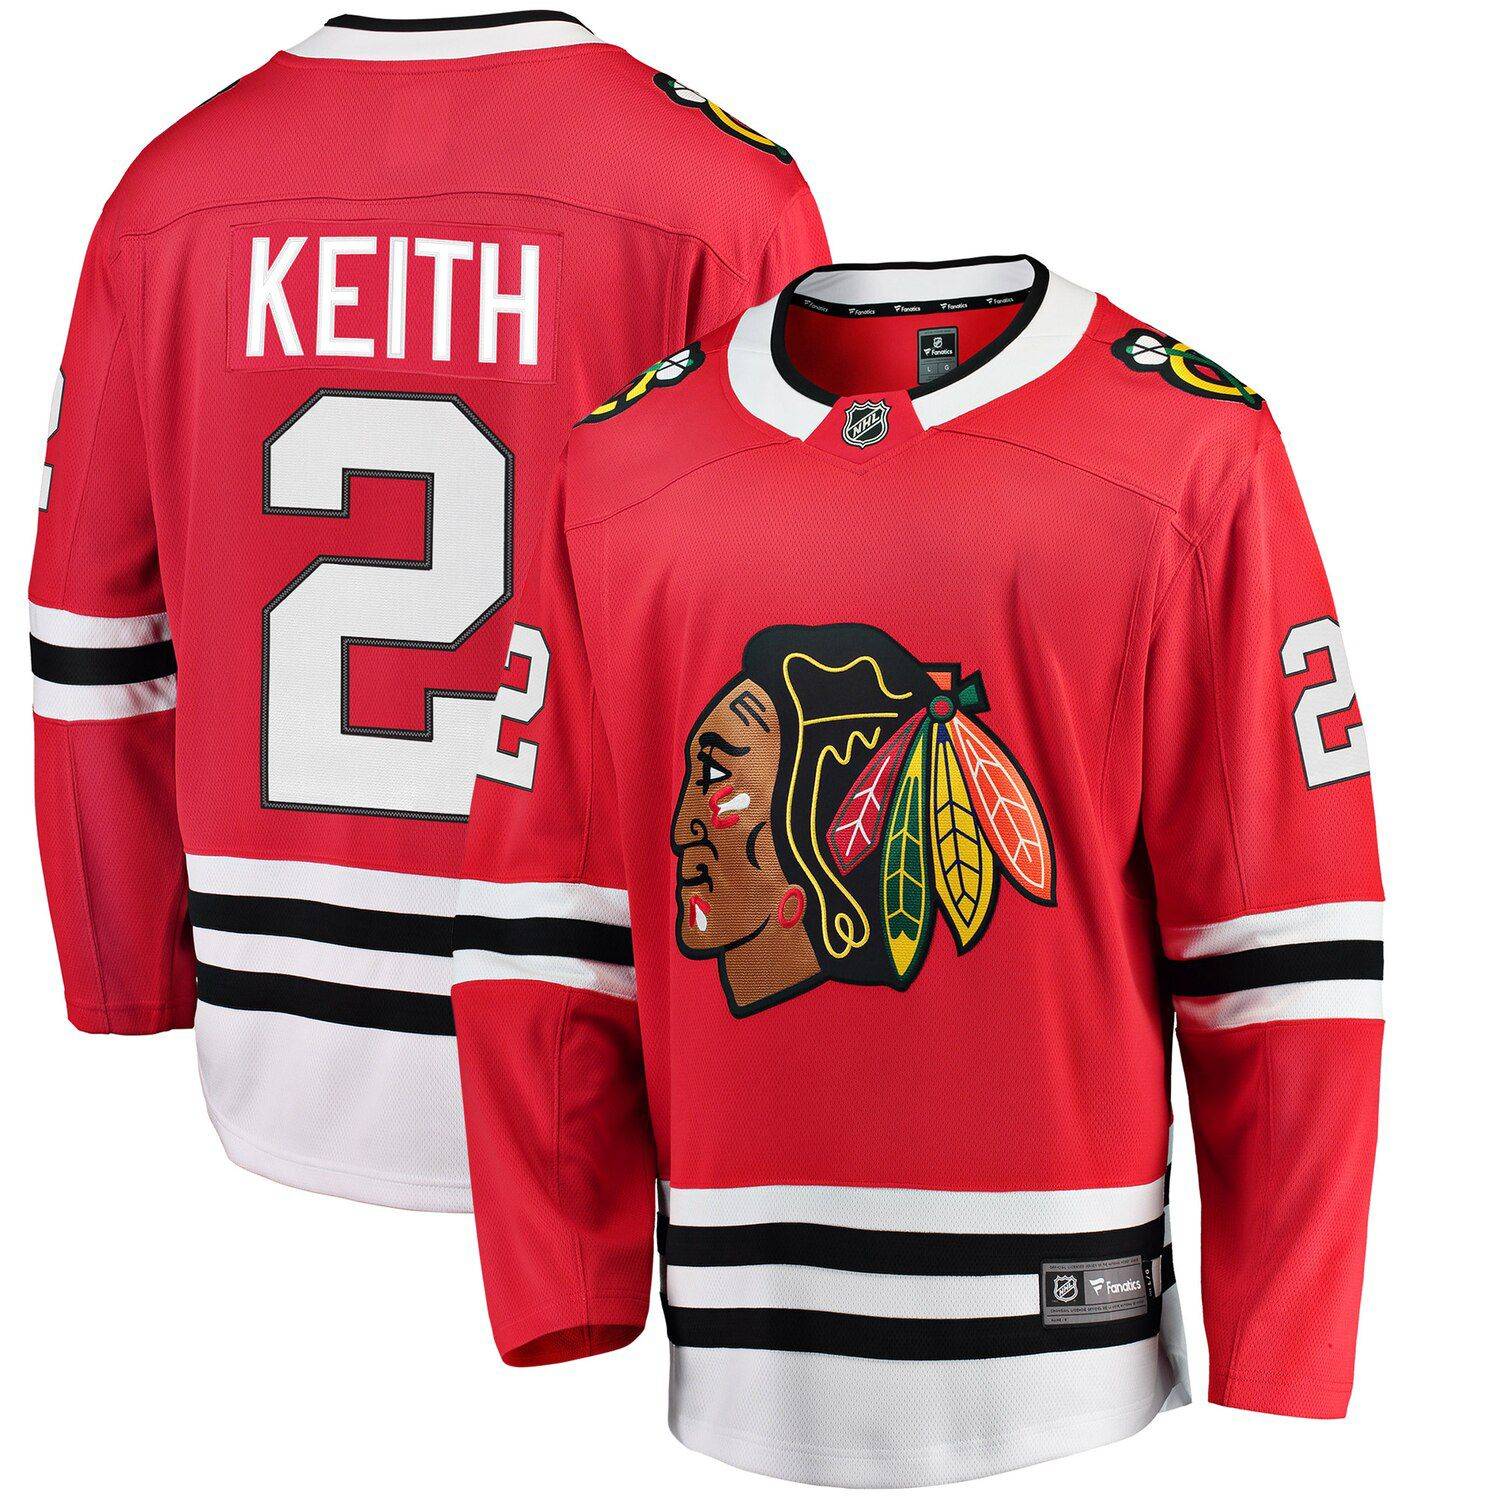 duncan keith mens jersey